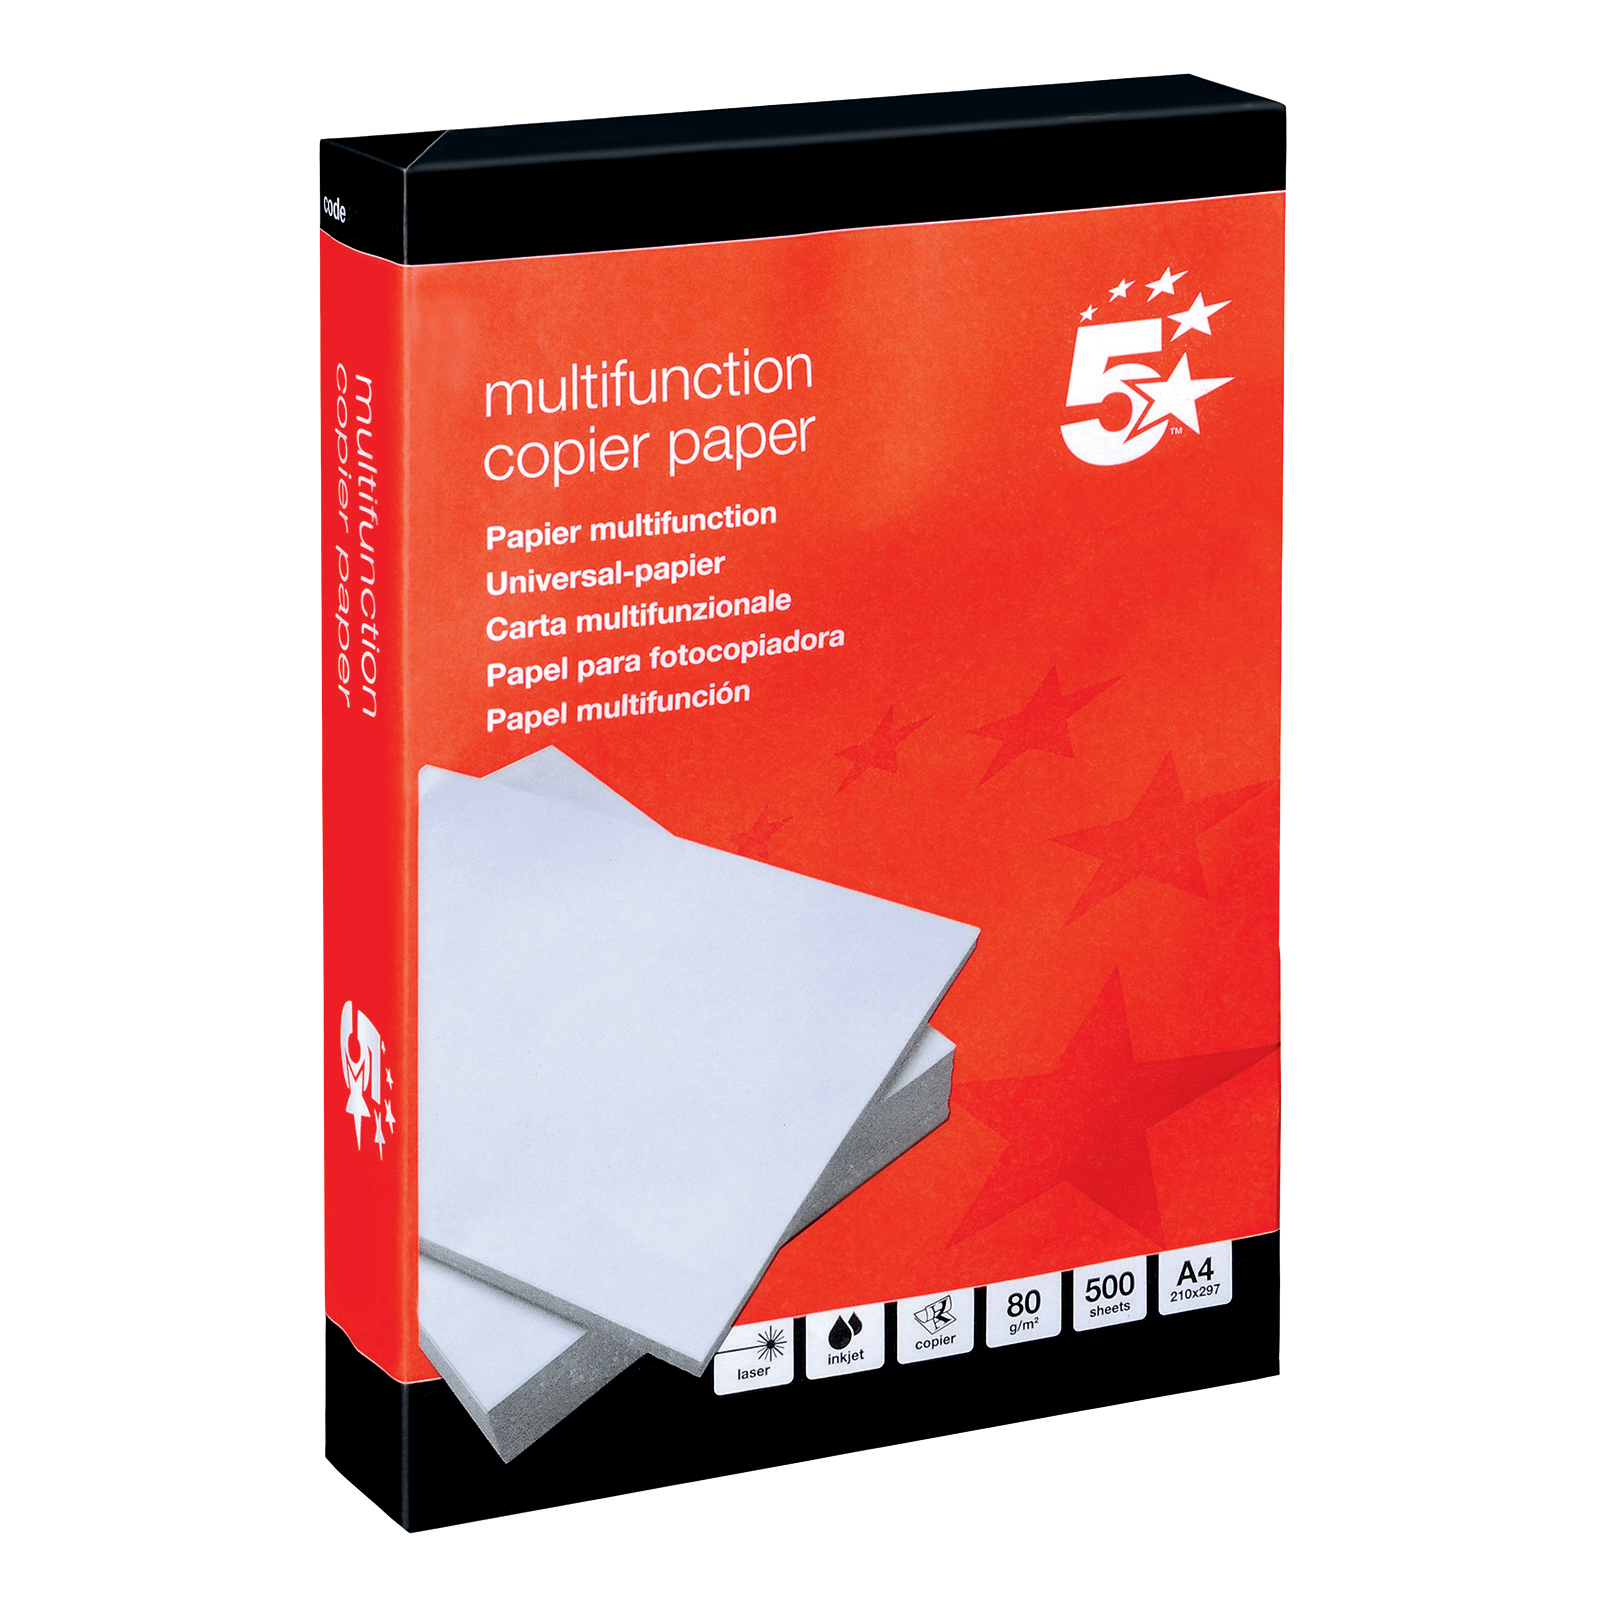 A4 5 Star Office Copier Paper Multifunctional Ream-Wrapped 80gsm A4 White [5 x 500 Sheets]